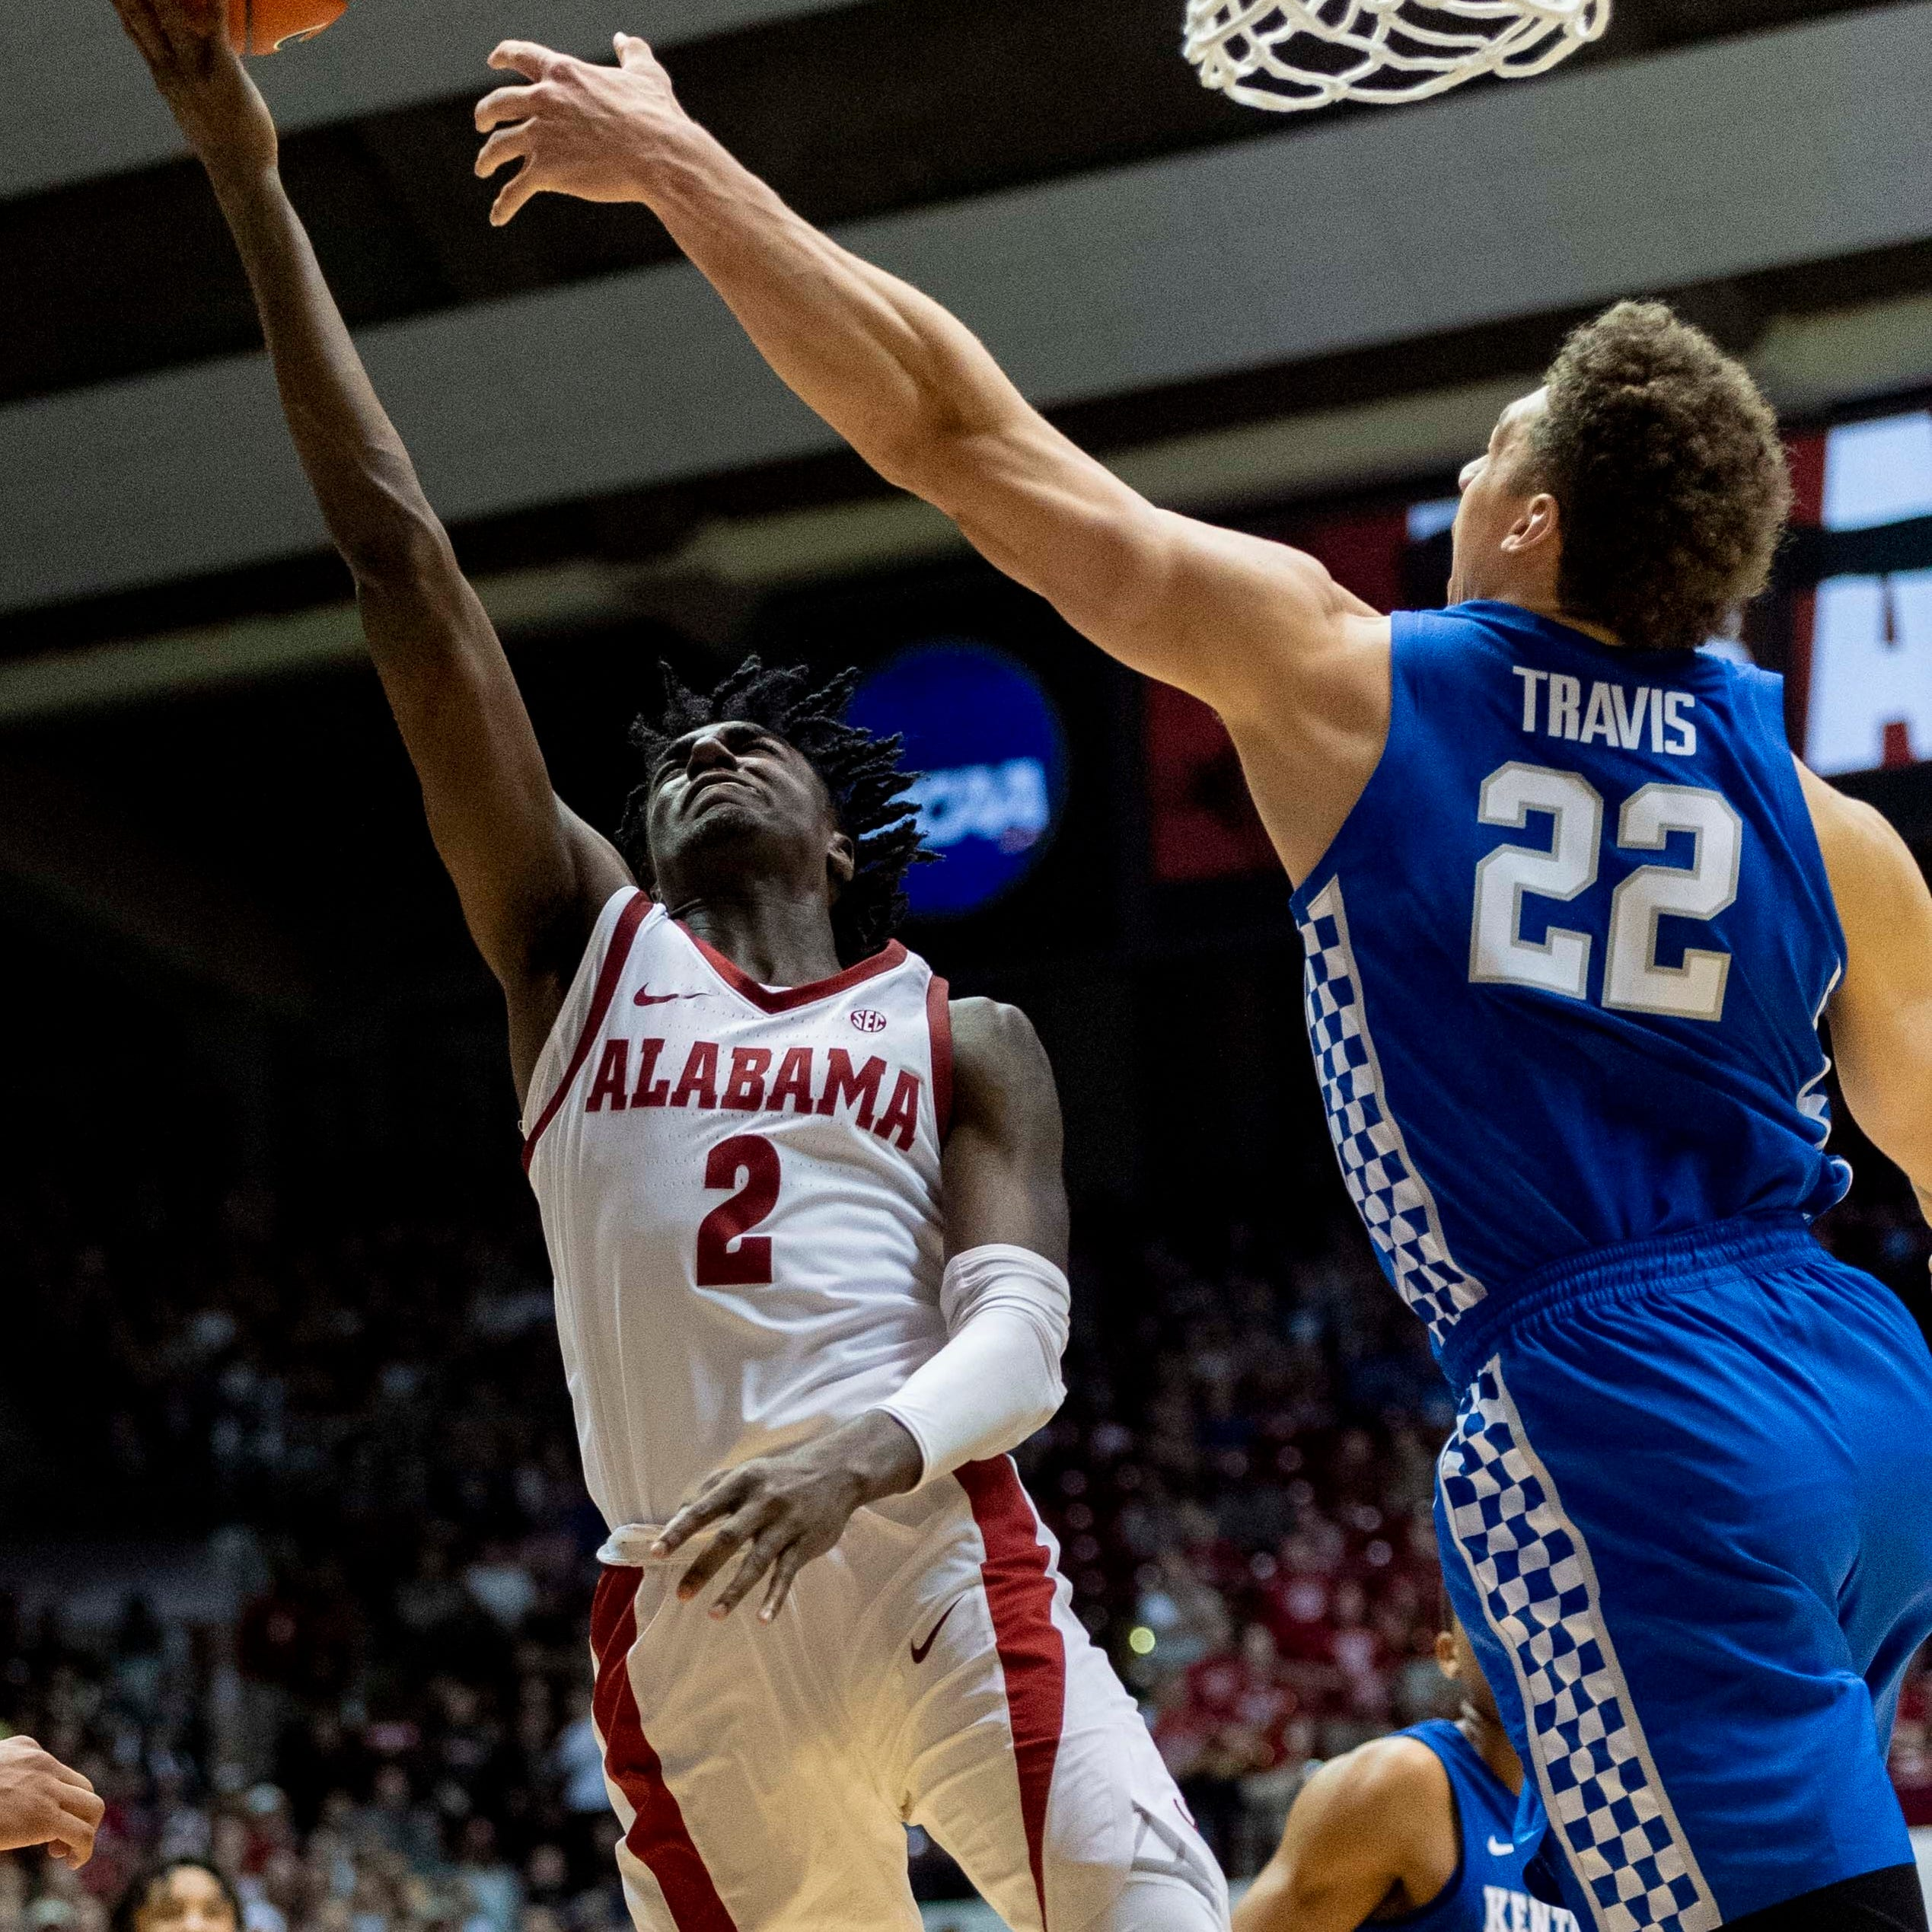 Kentucky basketball vs. Alabama: How to watch SEC Tournament matchup